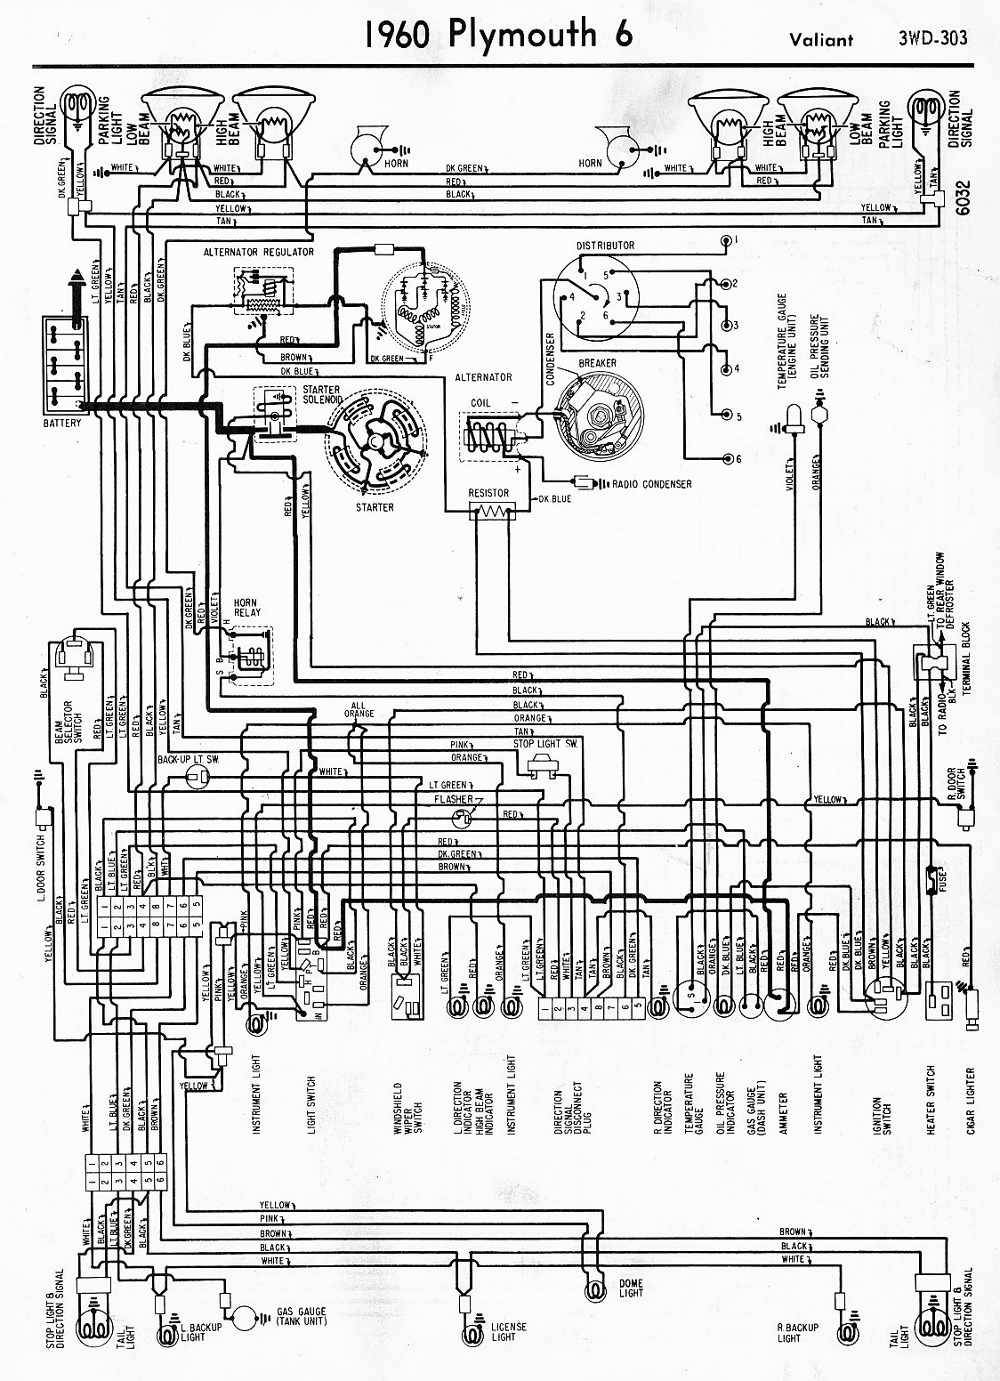 hight resolution of chrysler valiant wiring diagram simple wiring diagram dodge dakota wiring diagrams 1966 plymouth valiant wiring diagram